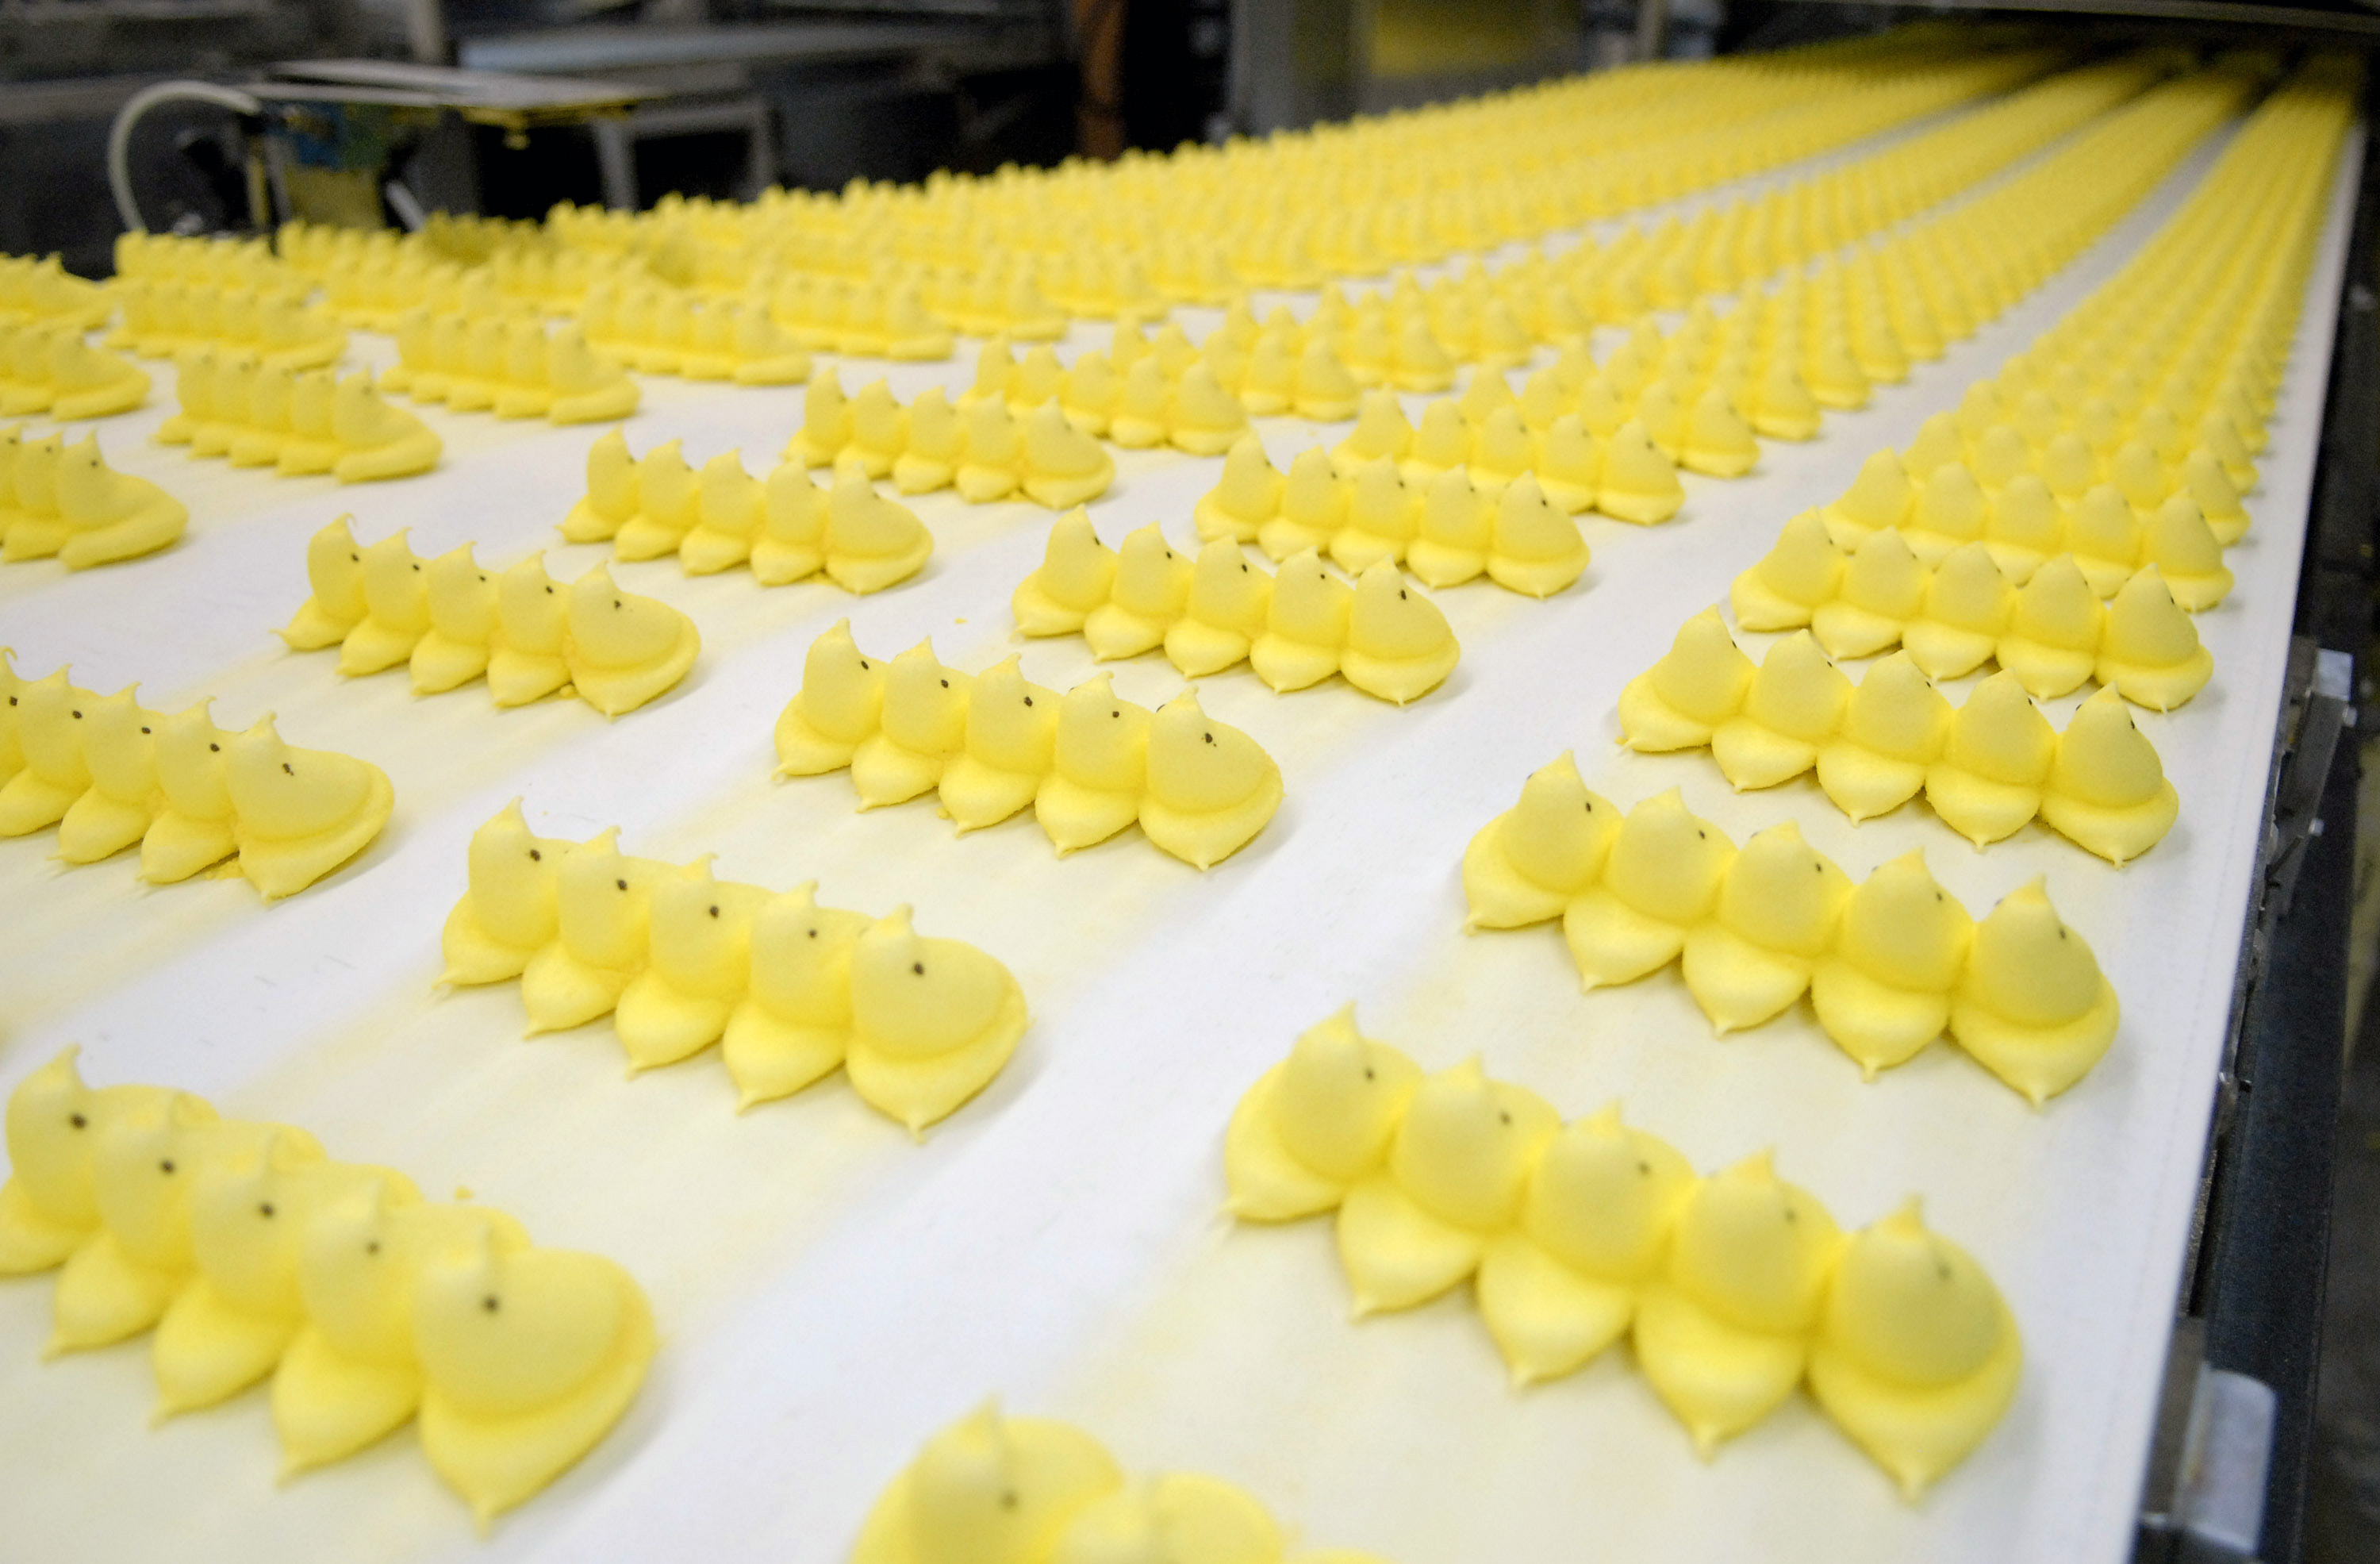 Marshmallow candy Peeps chicks move down a conveyor belt to